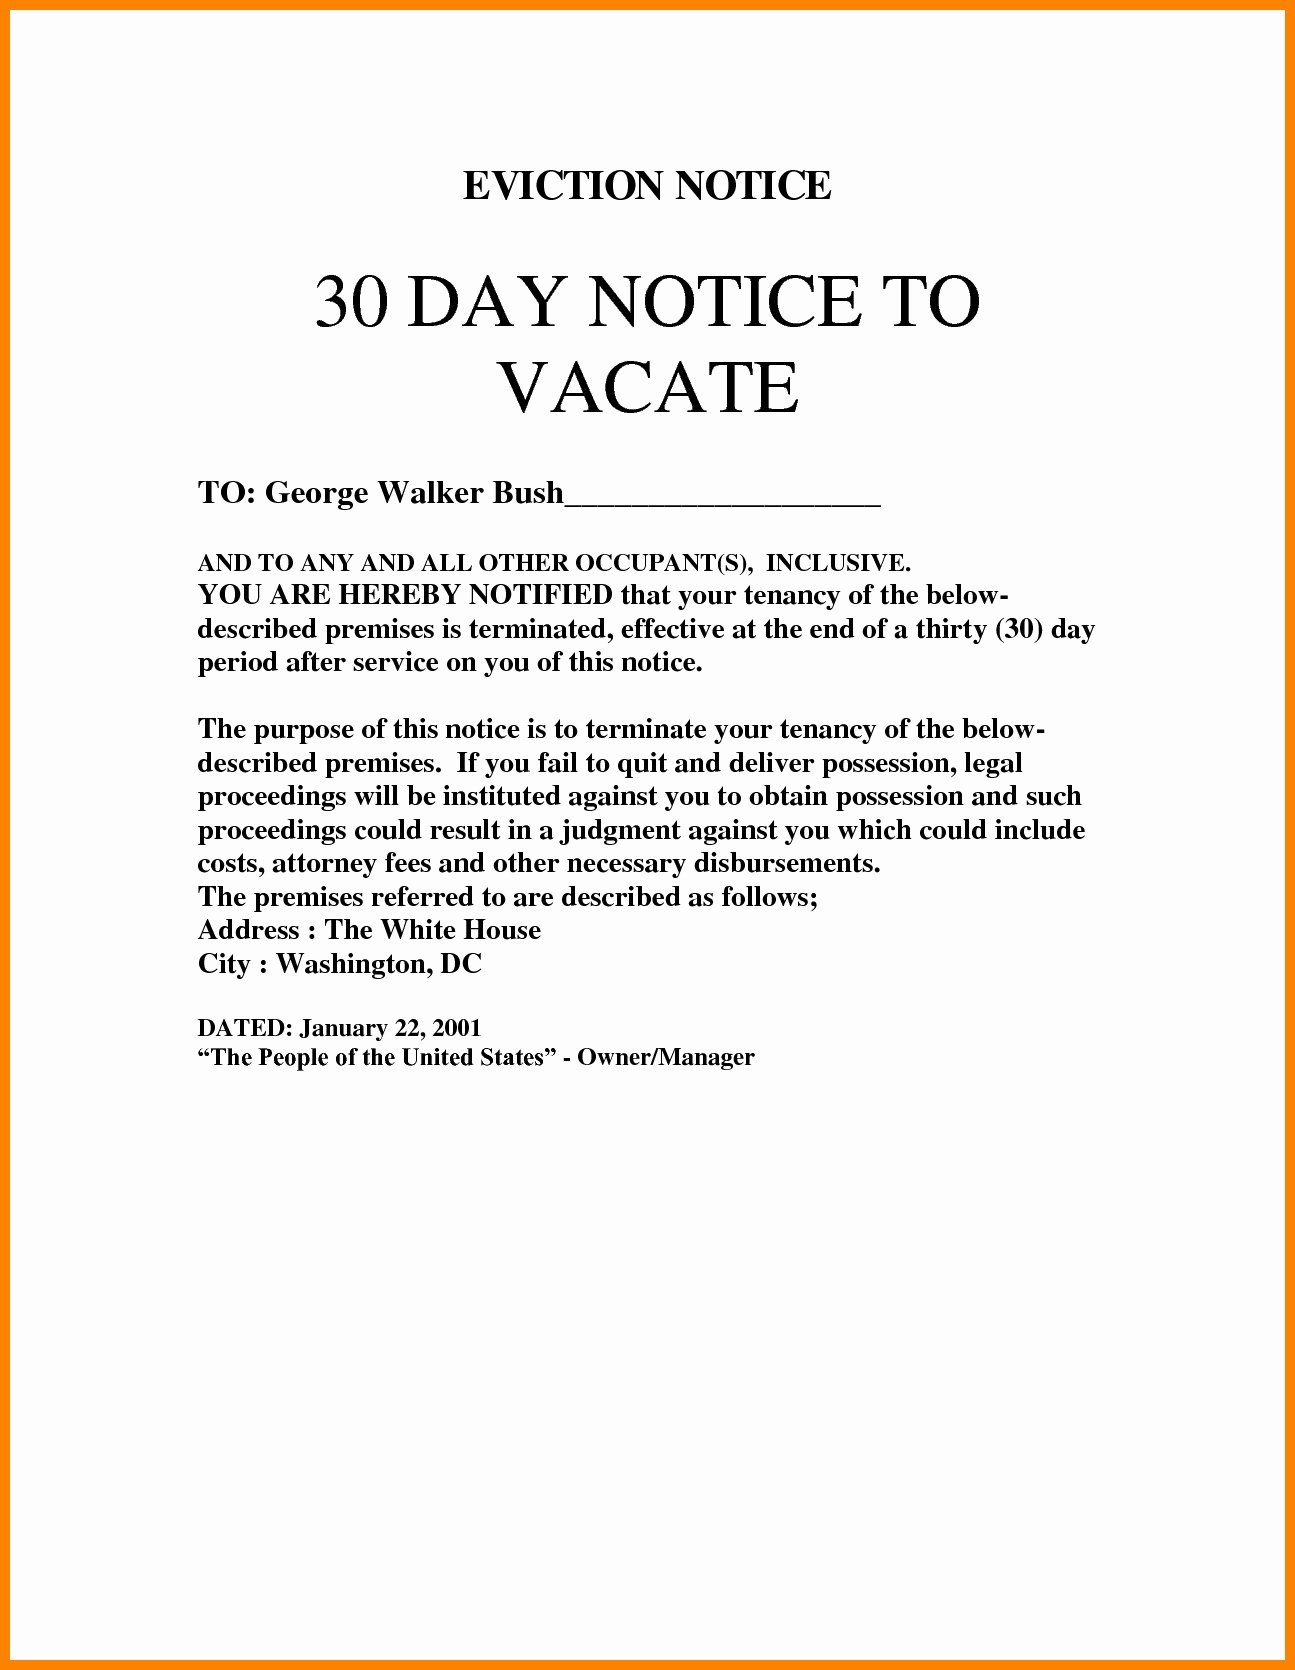 40 30 Day Eviction Notice Form In 2020 30 Day Eviction Notice